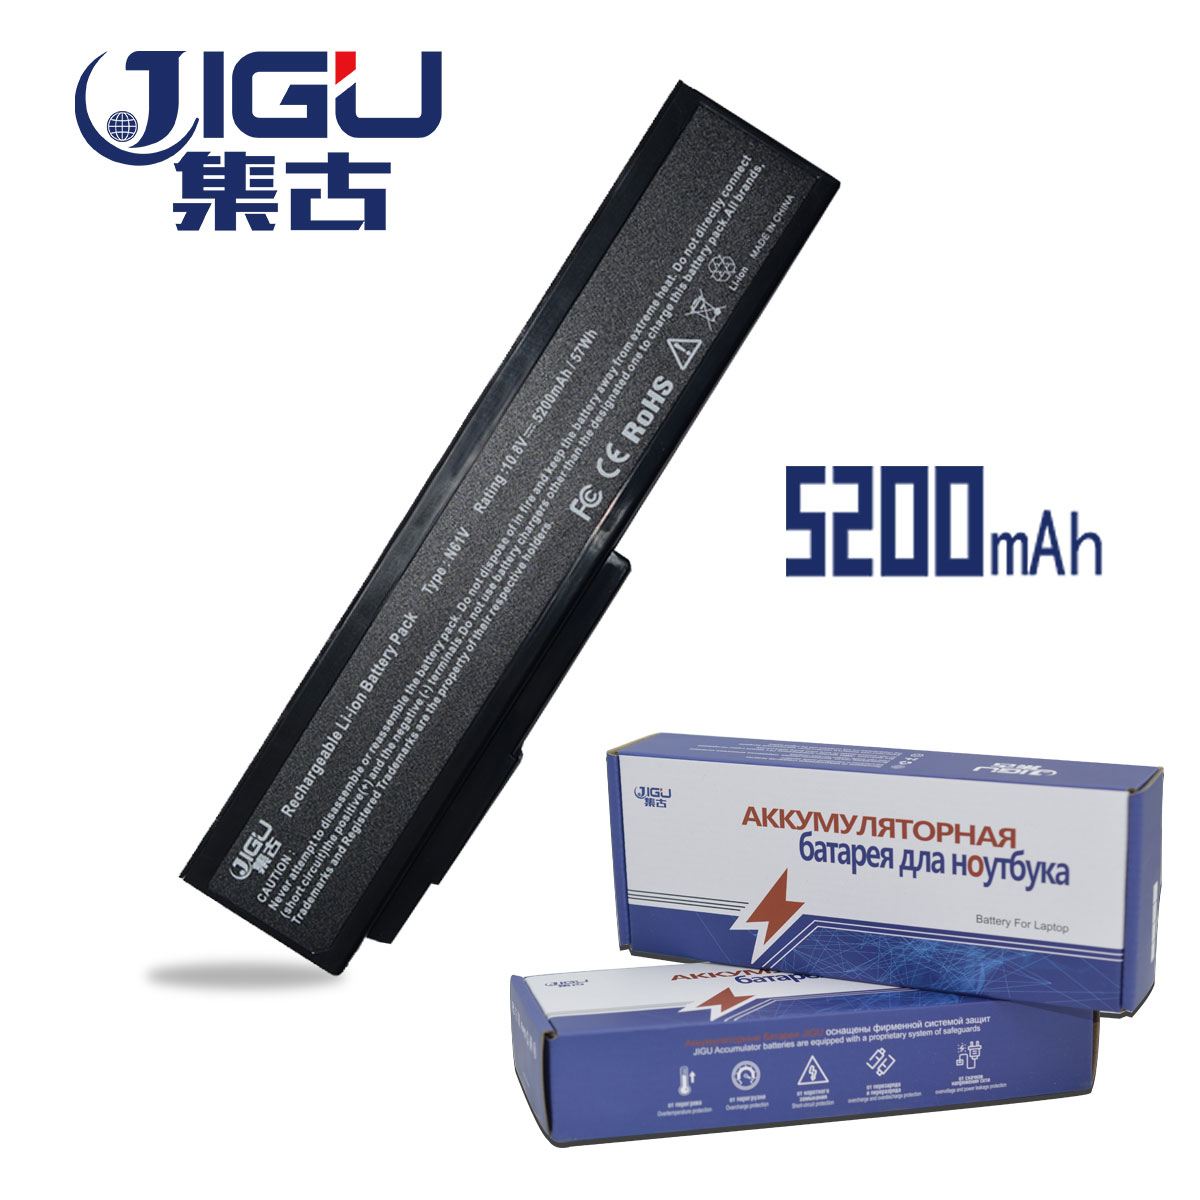 JIGU [Special Price] New Laptop Battery For Asus M50 G50 L50 M50V M50Q G50VT Series, A32-M50 A33-M50 15G10N373800 ,6Cells